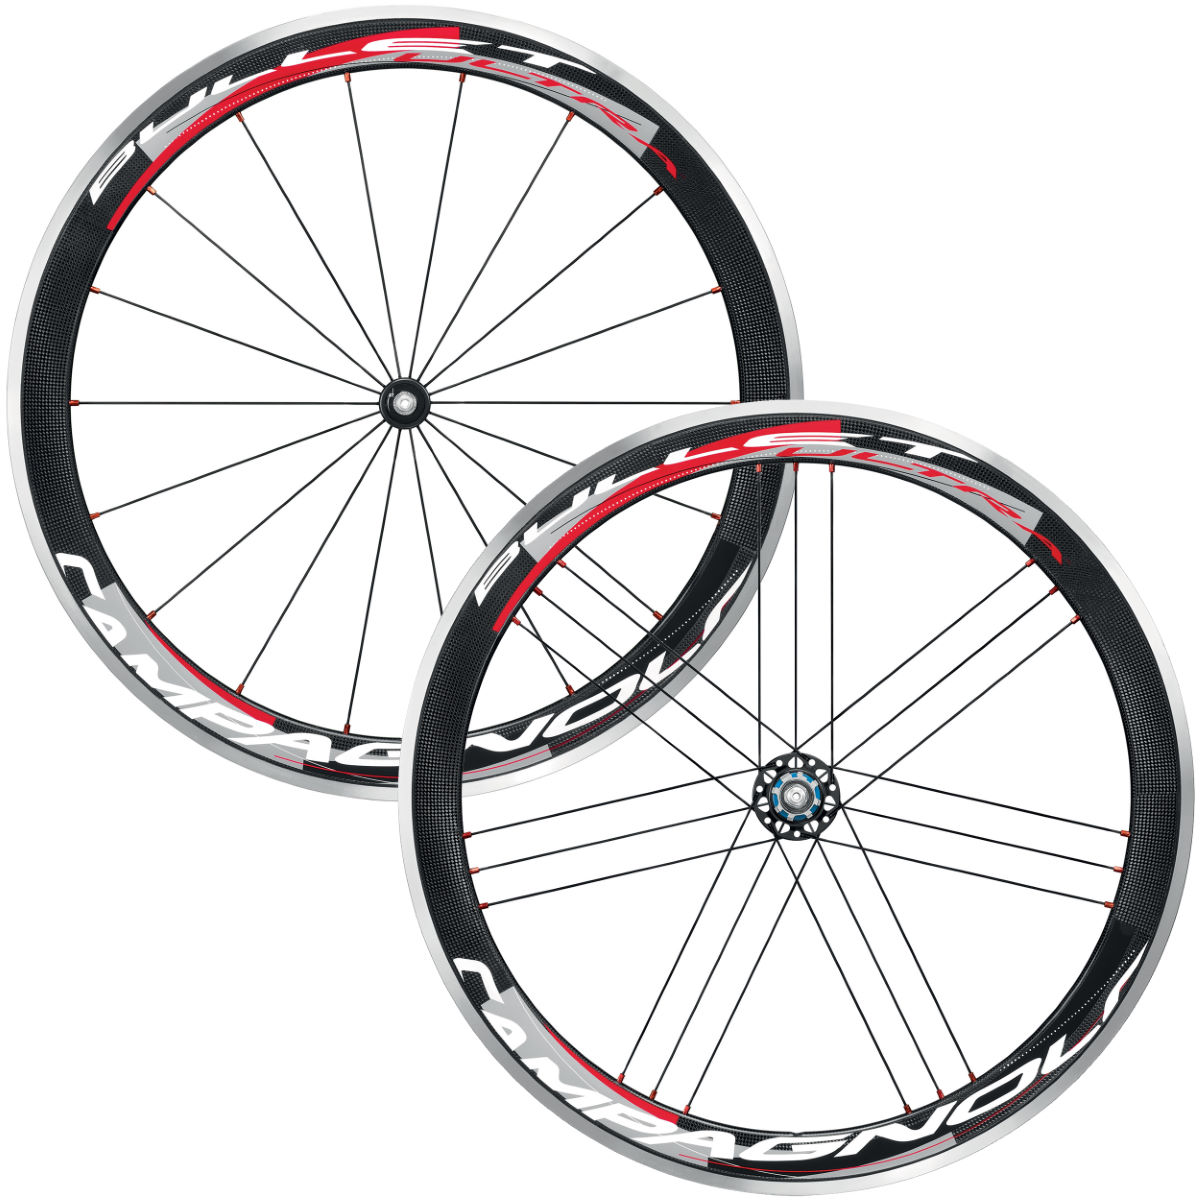 Paires de roues Campagnolo Bullet Ultra 50 Cult Dark Label (carbone) - Campagnolo Freehub Black/White/Red Roues performance